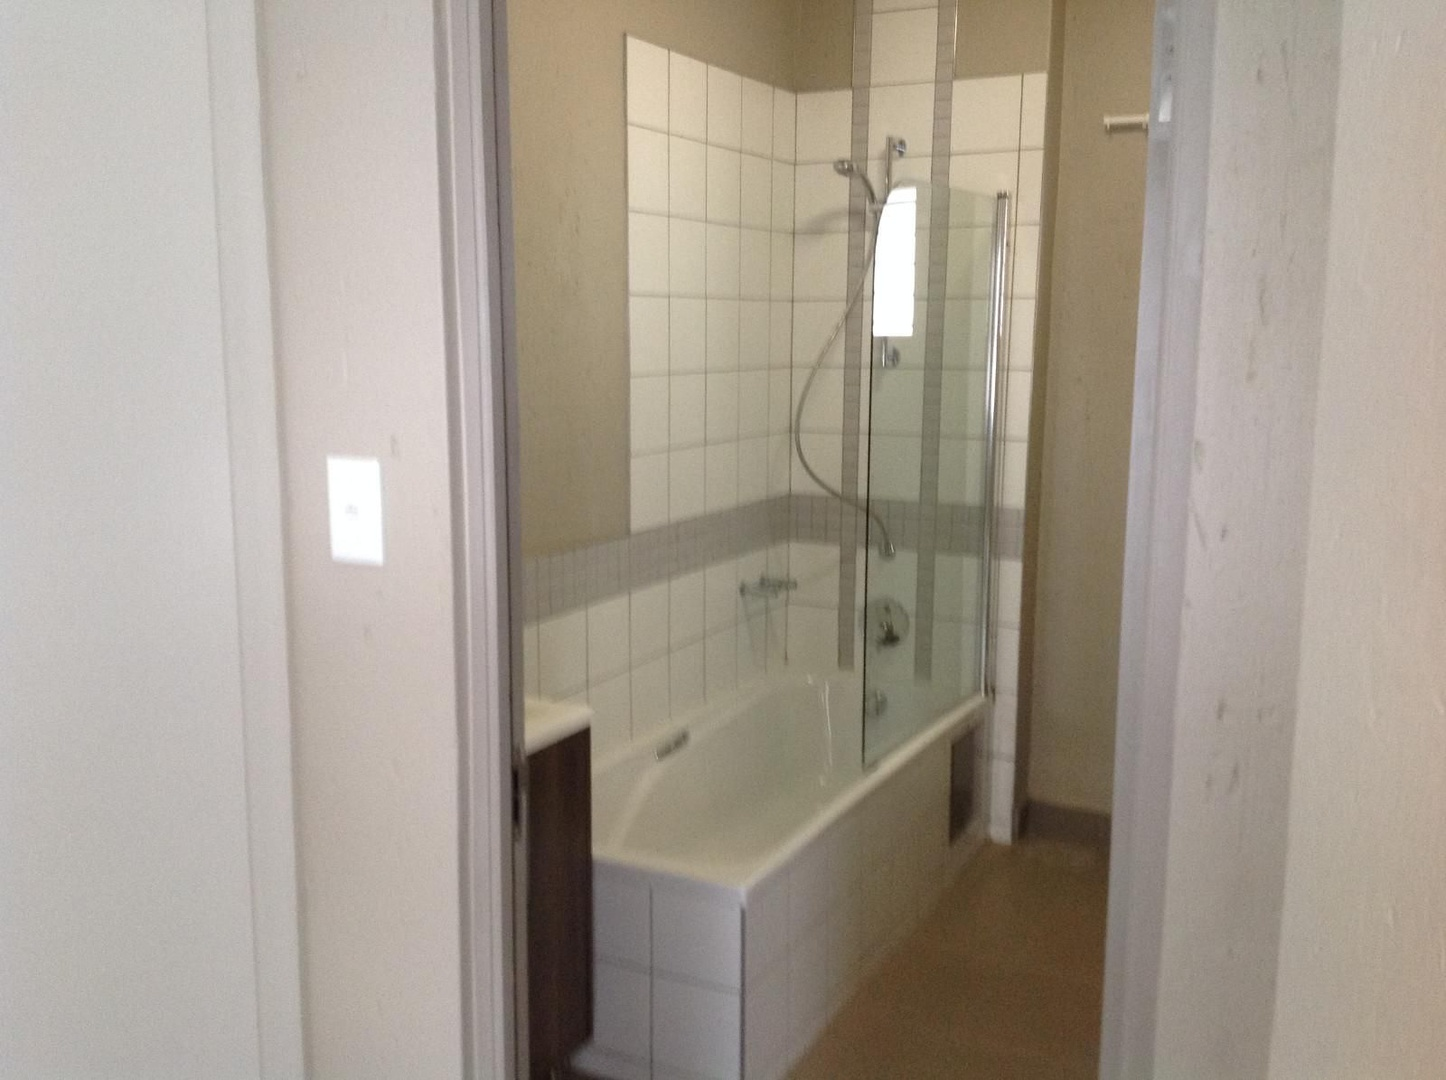 Apartment in Bult - image (37).jfif